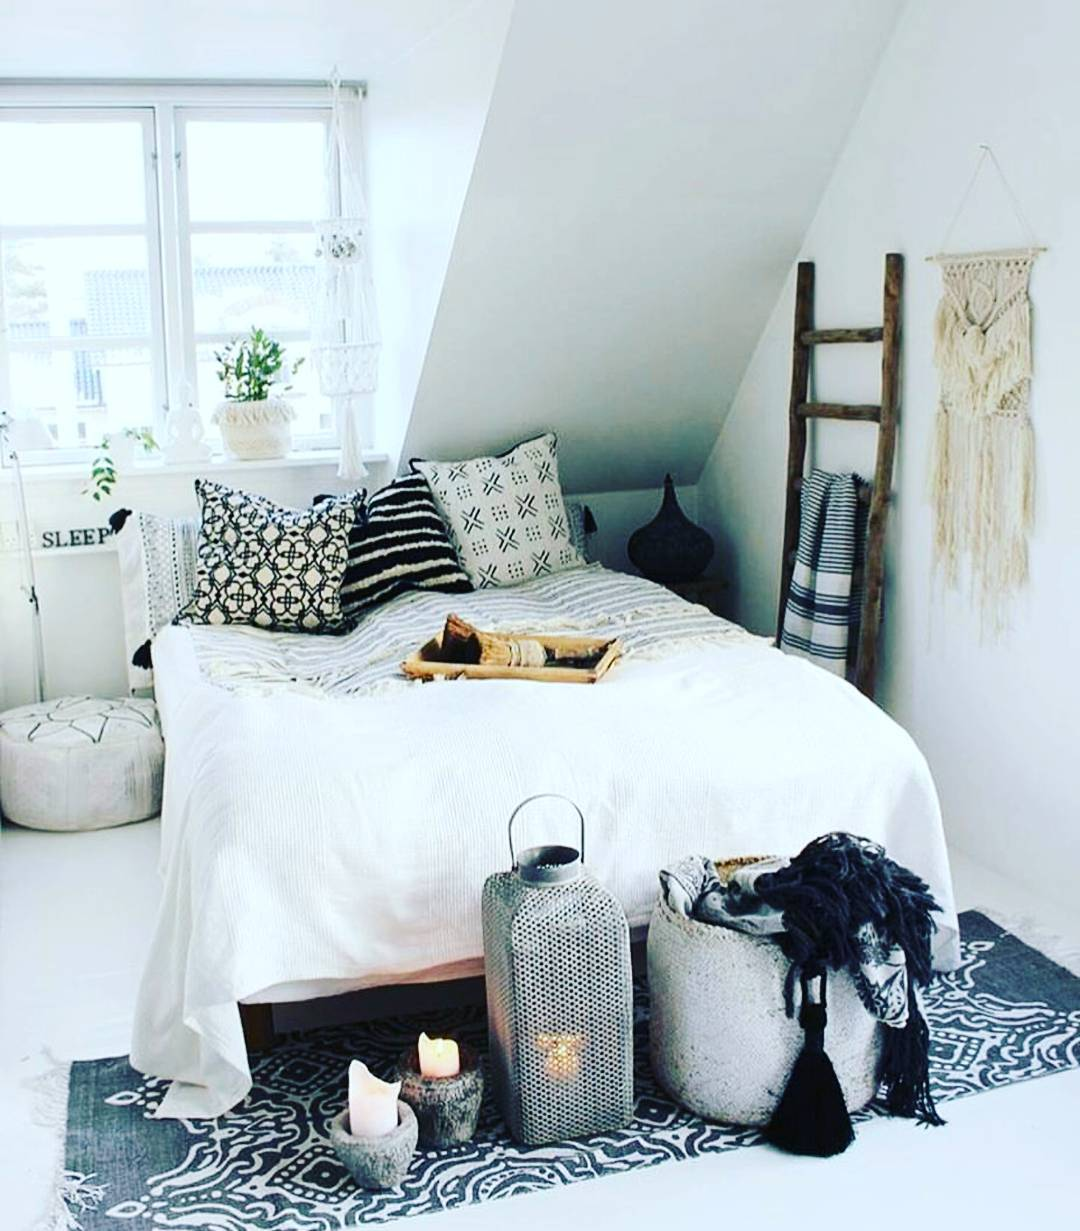 21 Bohemian Chic Bedroom Decor Ideas